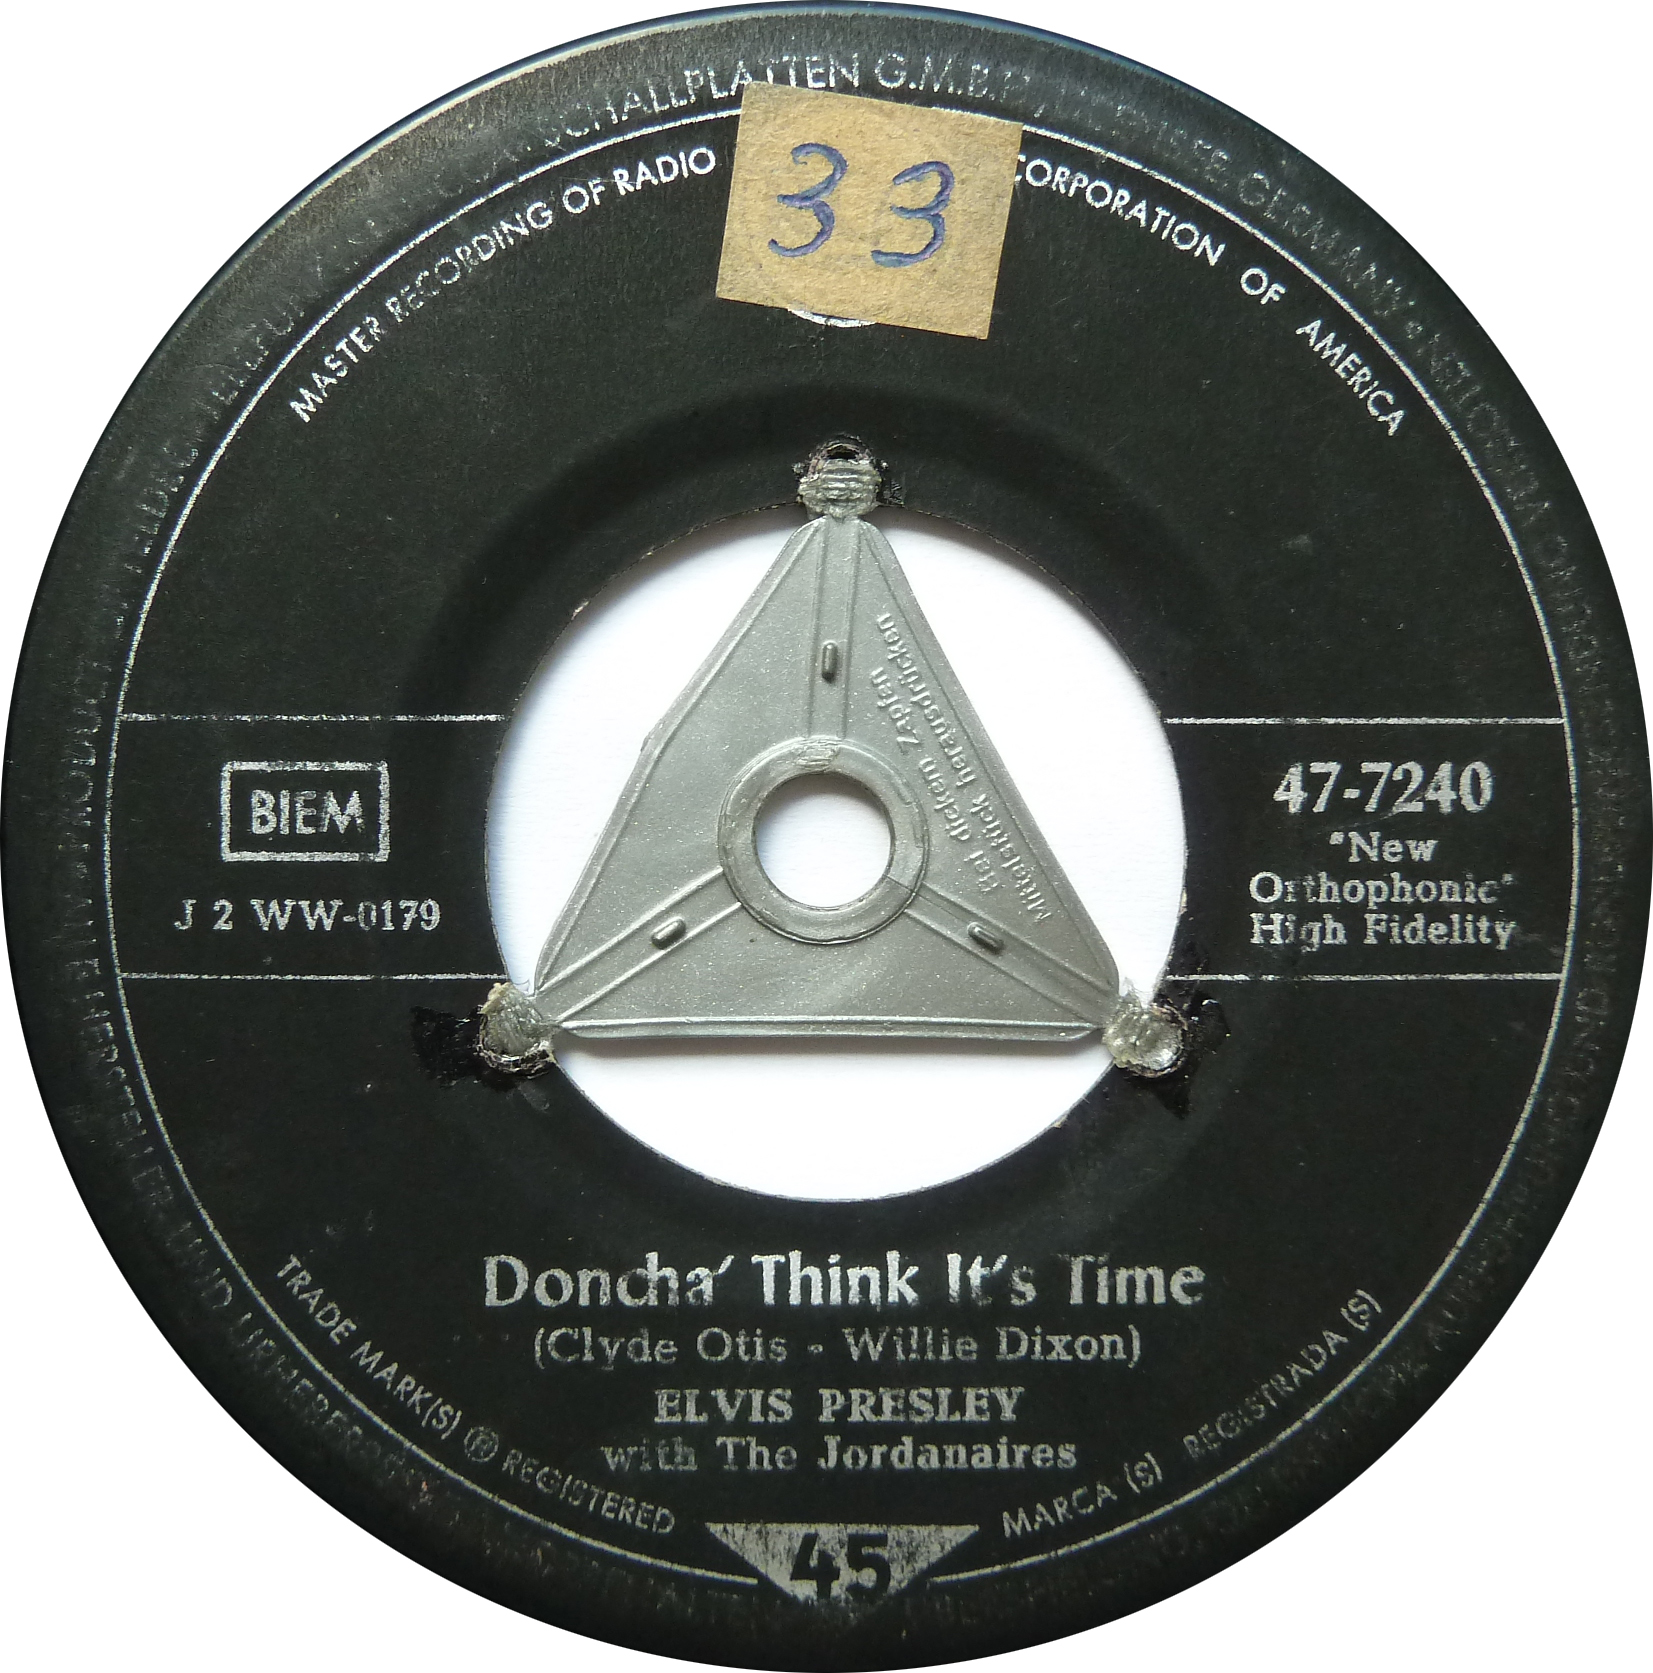 Doncha´ Think It's Time / Wear My Ring Around Your Neck Dontchathinks4side1kcuiz